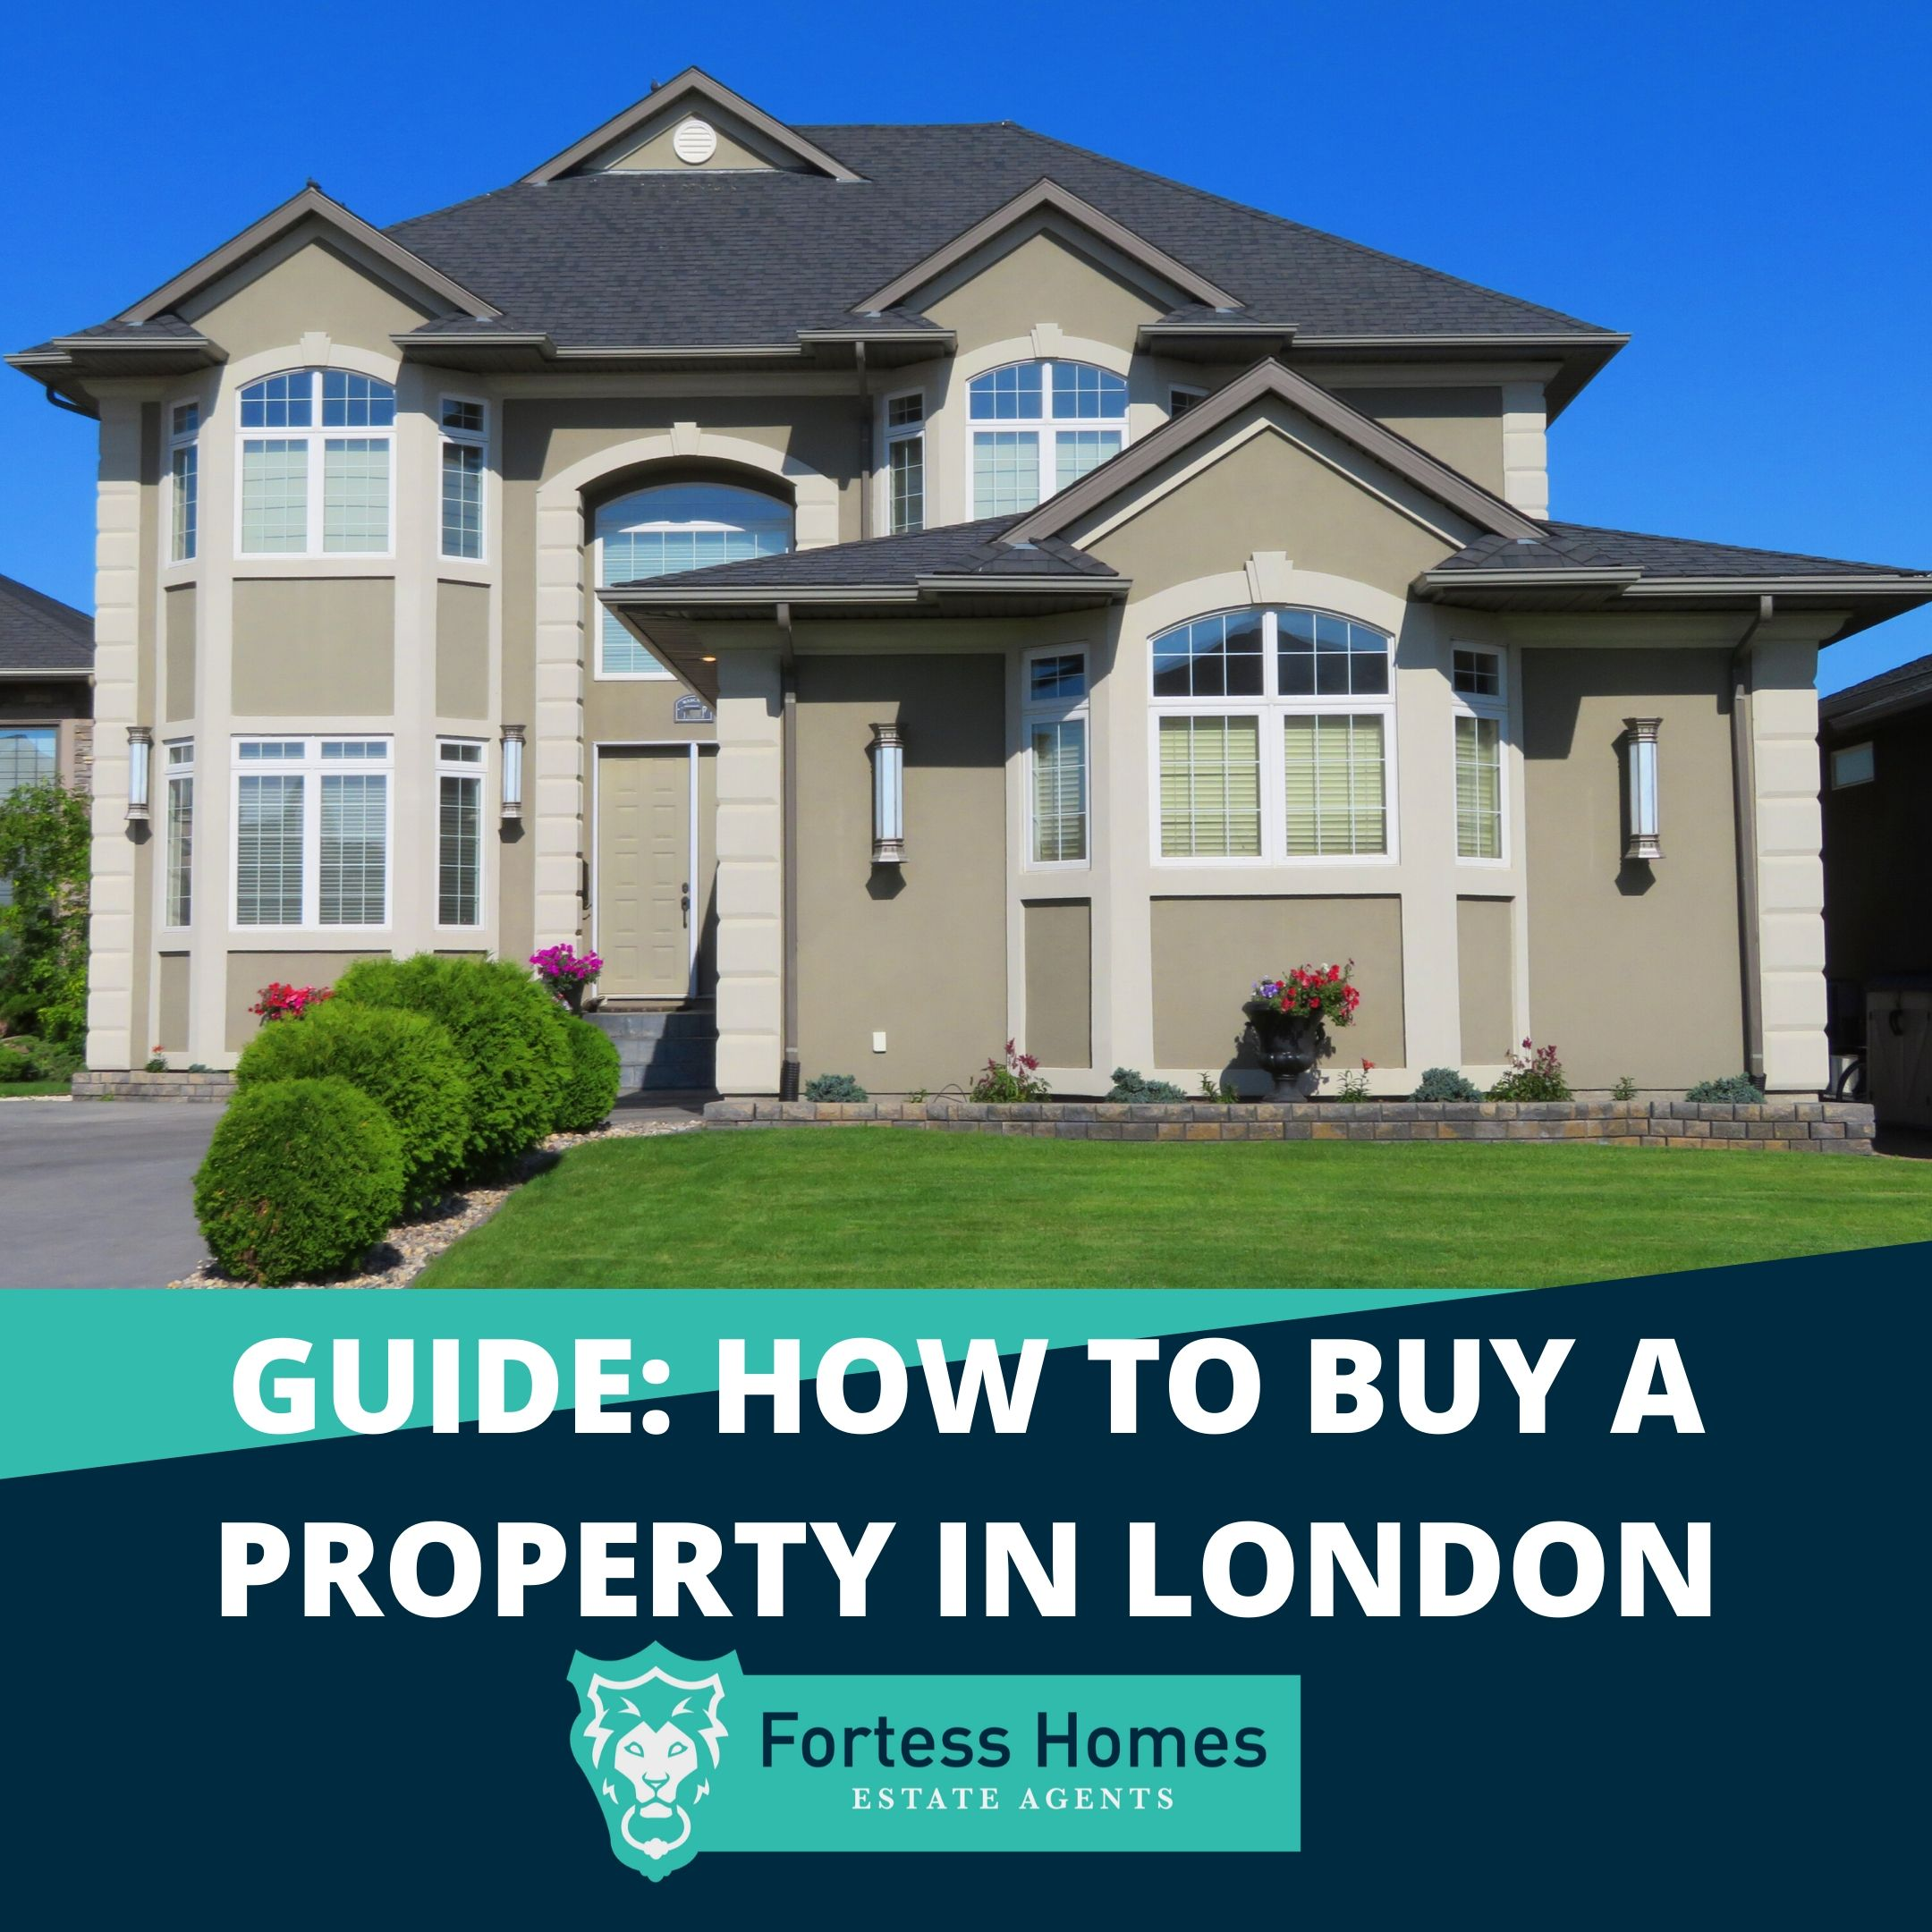 GUIDE: HOW TO BUY A PROPERTY IN LONDON